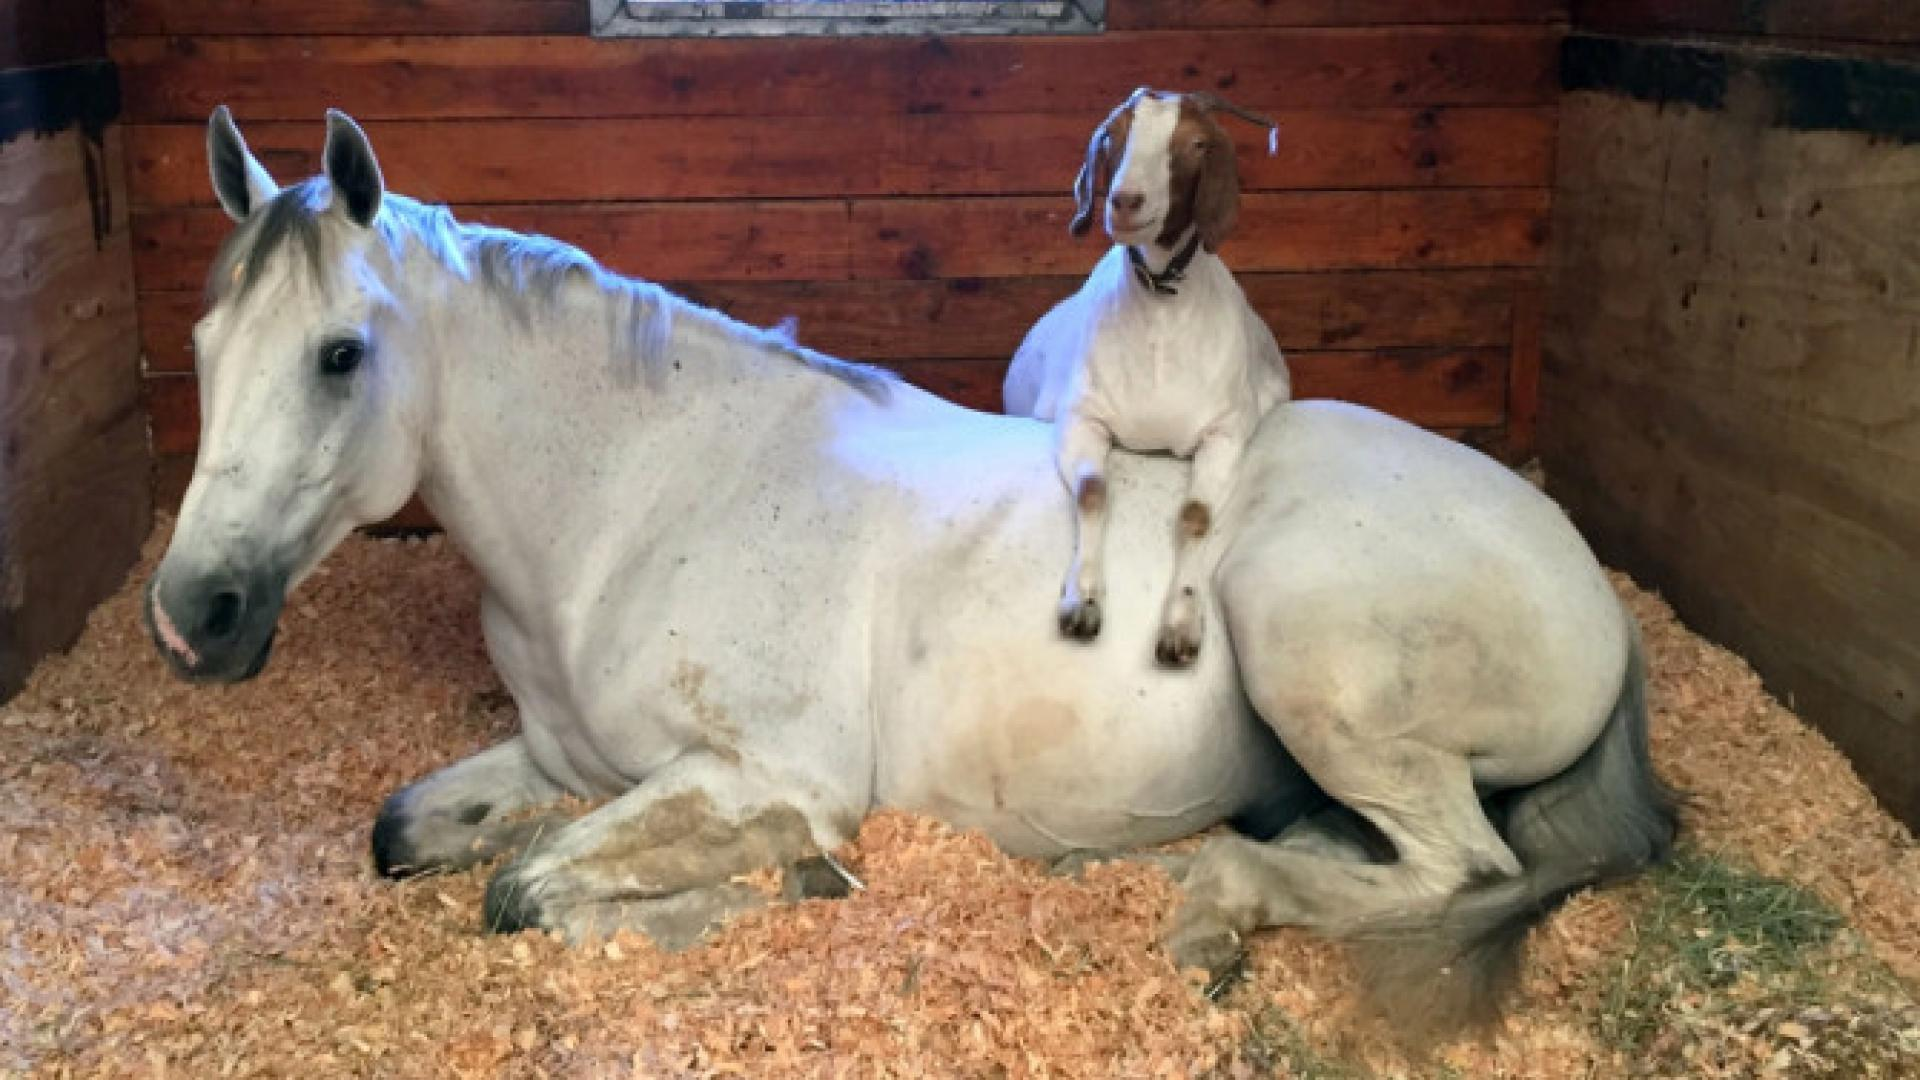 Rescue Goat Invades Personal Space Of Competitive Horse Bff By Lounging On His Back Inside Edition